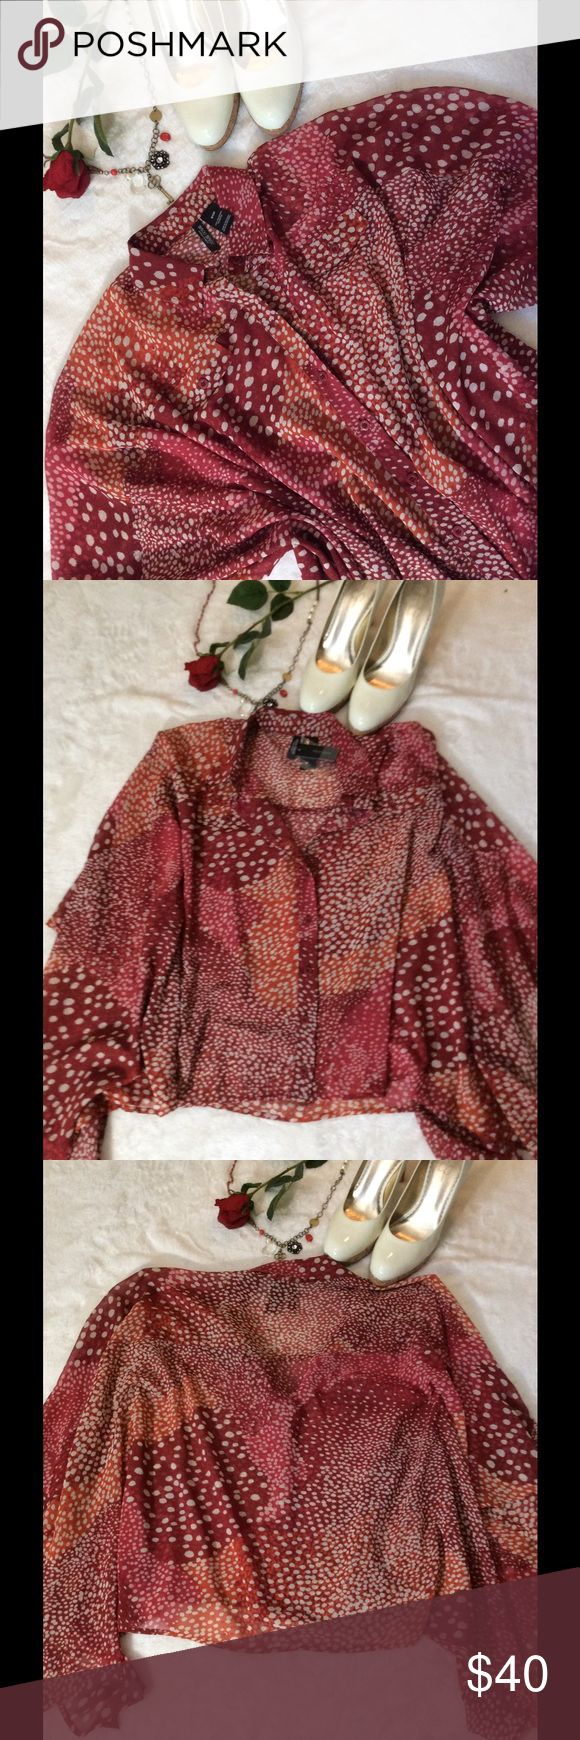 🦊NWT Bisou Bisou Ombré Dot Print Boxy Blouse 🦊Bisou Bisou. NWT Size S  Ombre Dot Print Dark Red( Maroon) Dark Orange and White 100% Polyester  Button down Boxy style Batwing 22in Shoulder top to hem  20in Armpit To Armpit  Sheer Bisou Bisou Tops Blouses